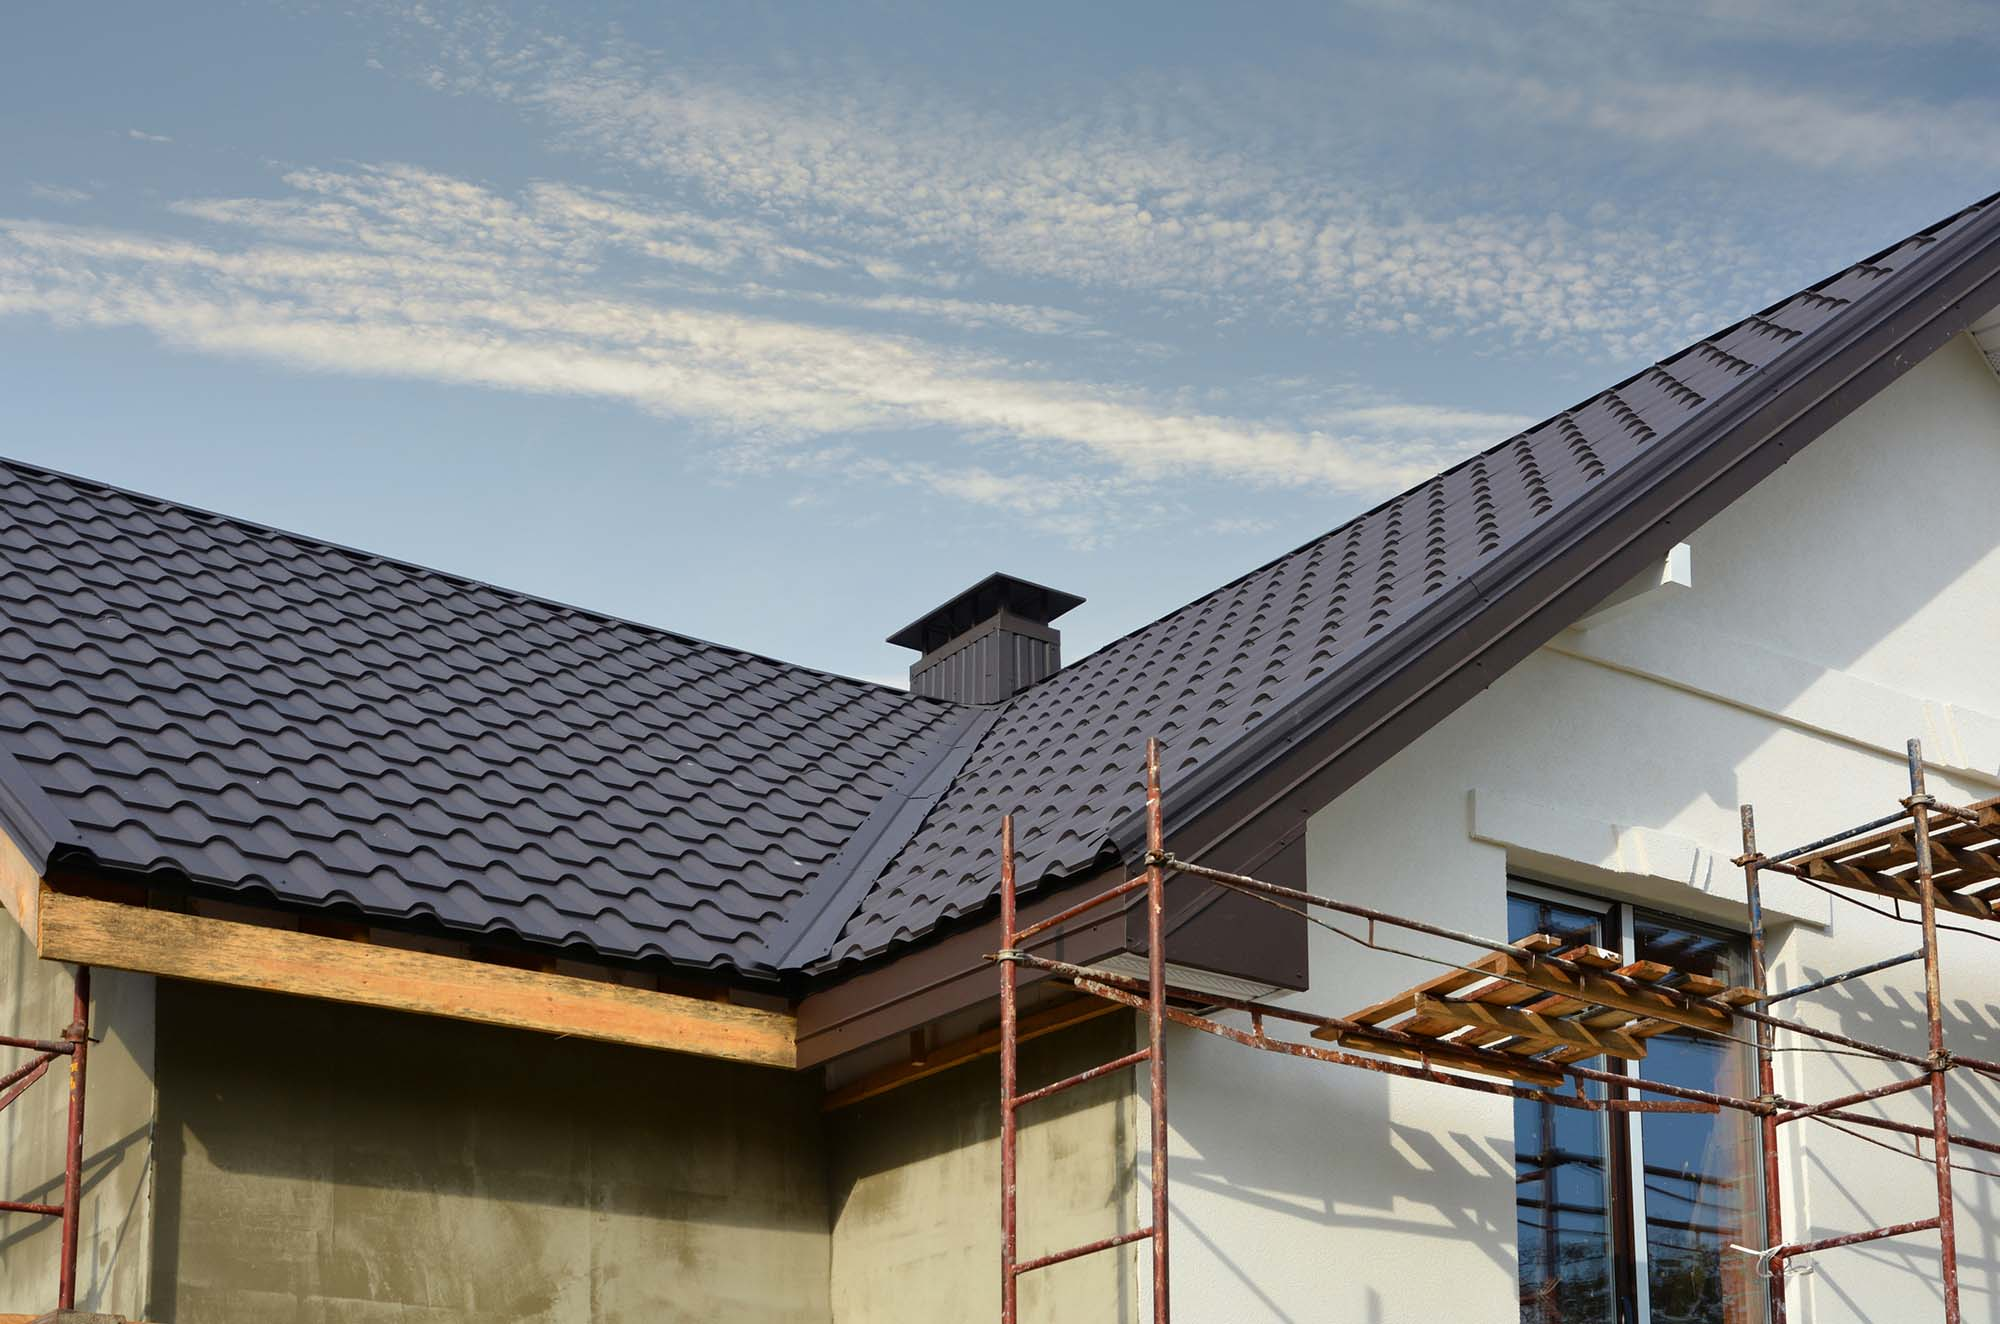 New installed grey tiles roof on home